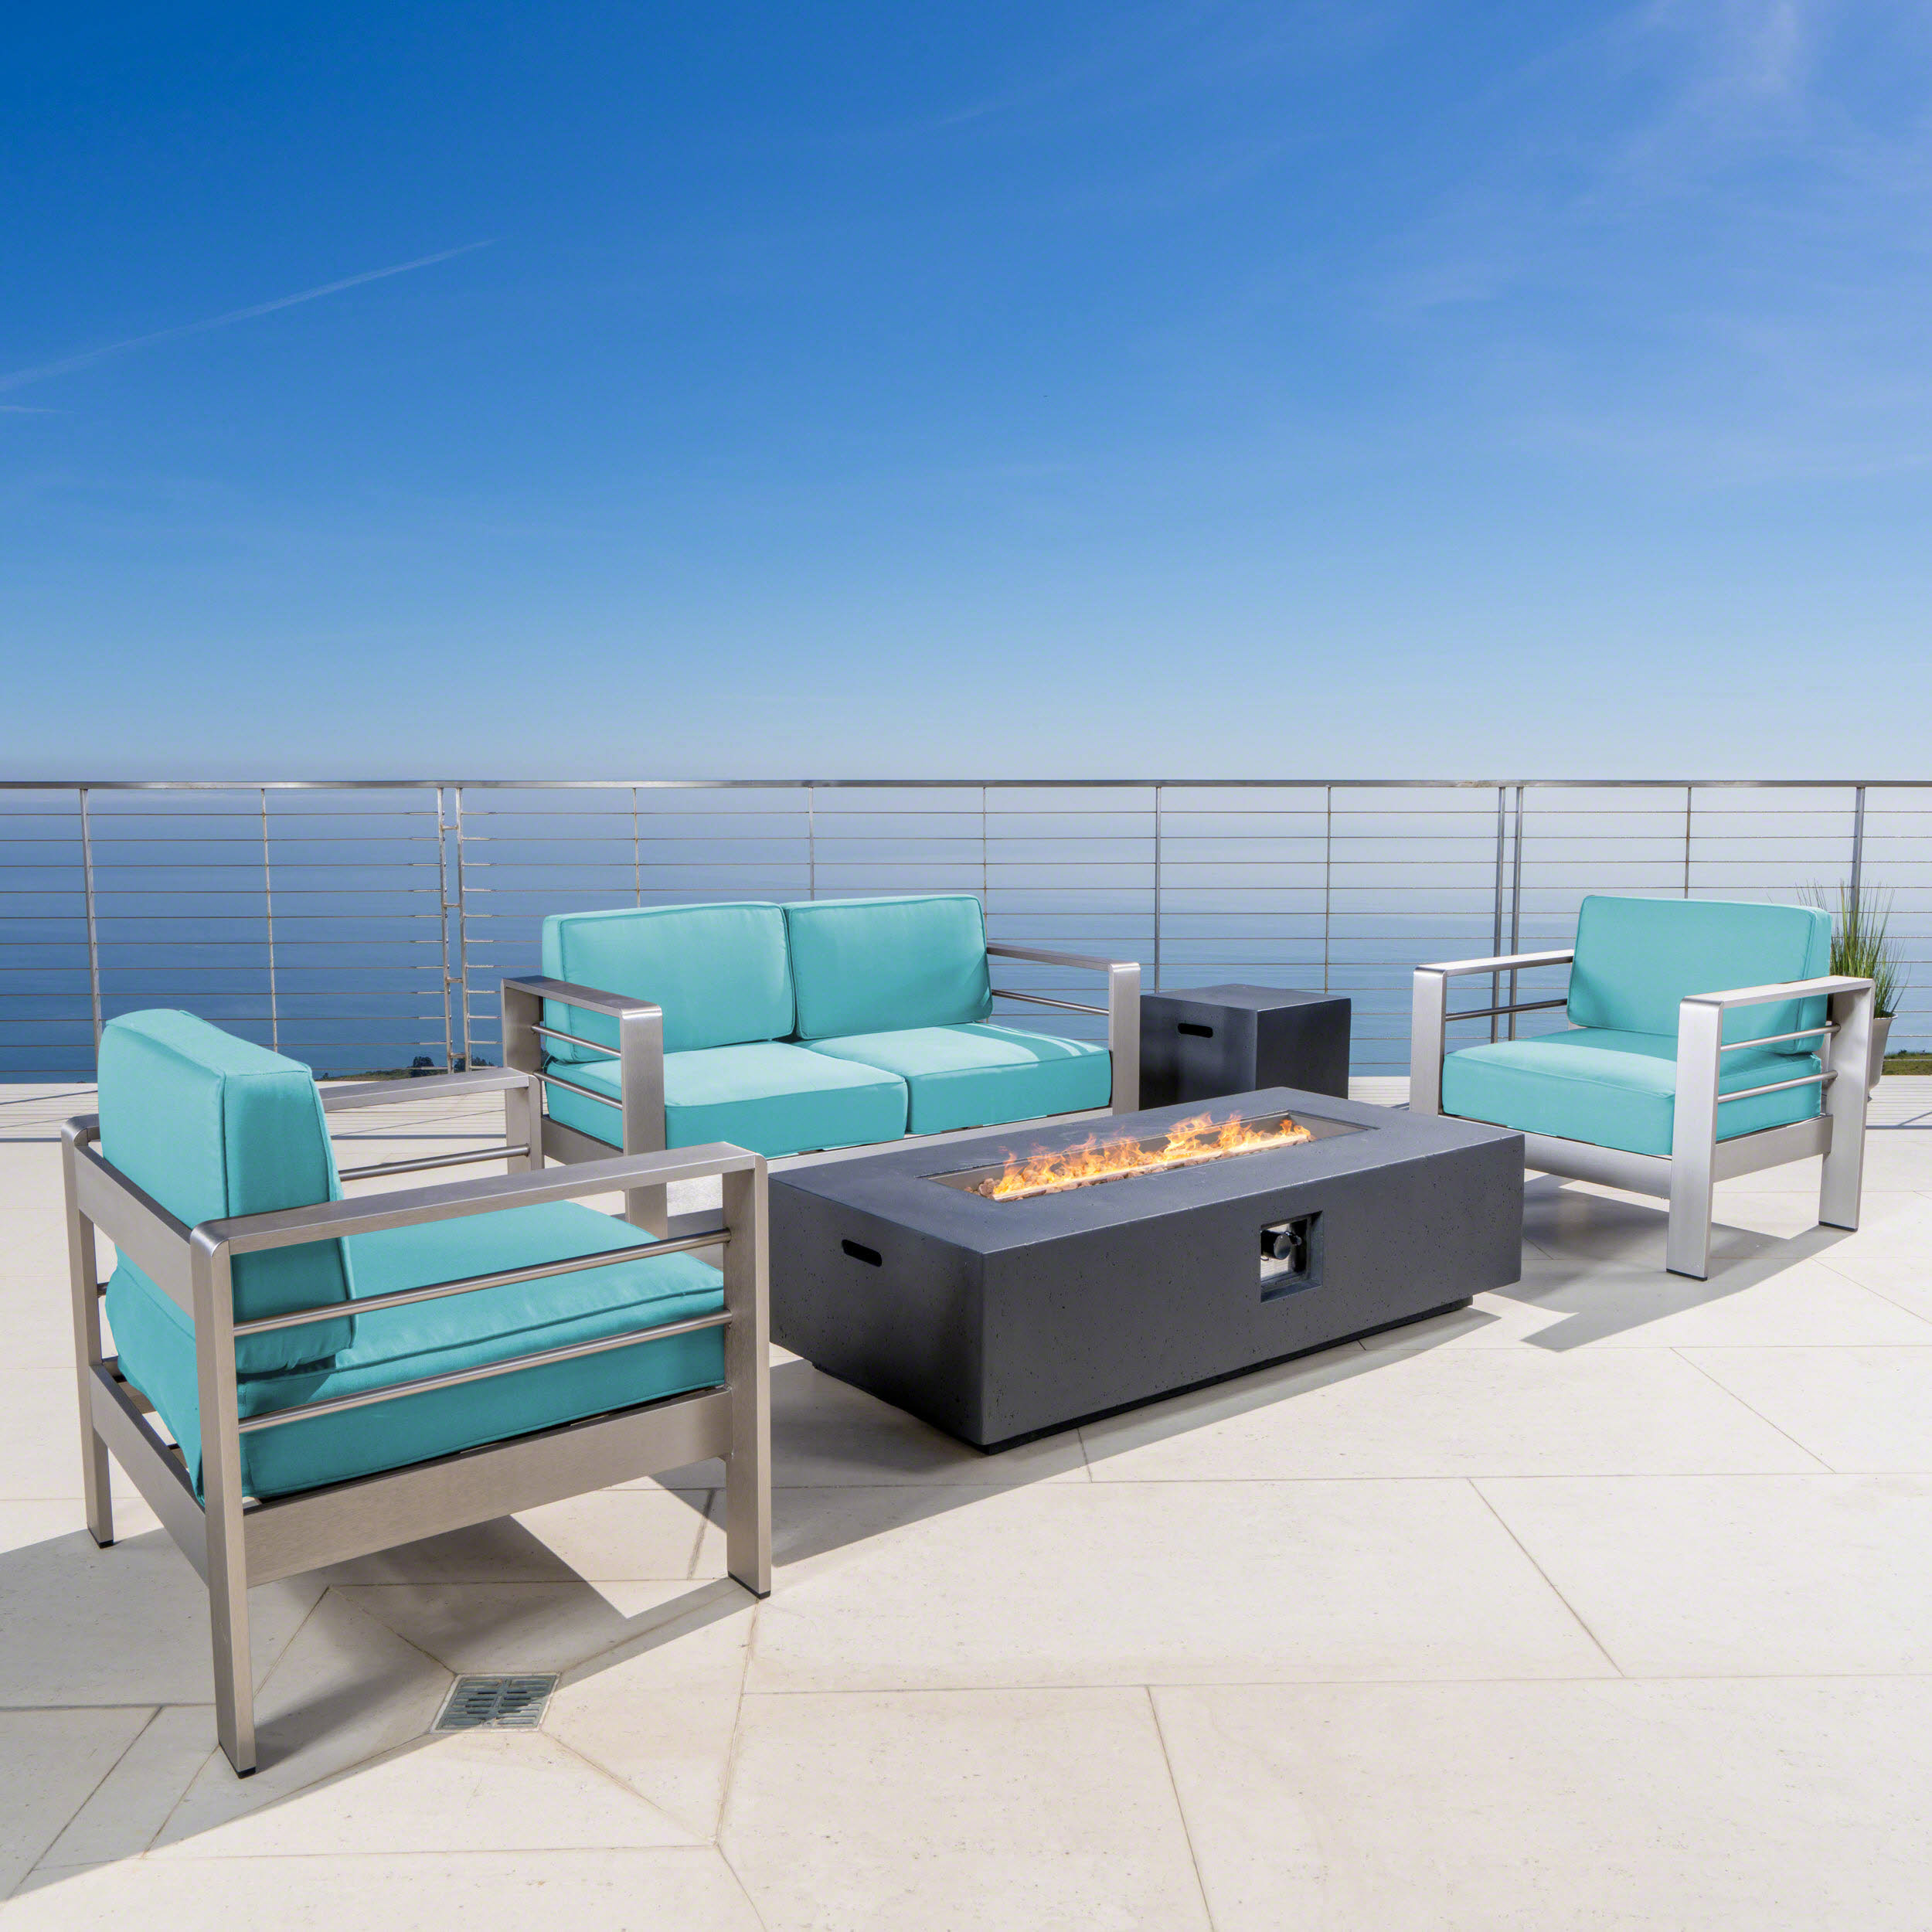 Cybele Doris Outdoor 5 Piece Aluminum Chat Set with Sunbrella Cushions and Dark Grey Fire Pit, Canvas Aruba